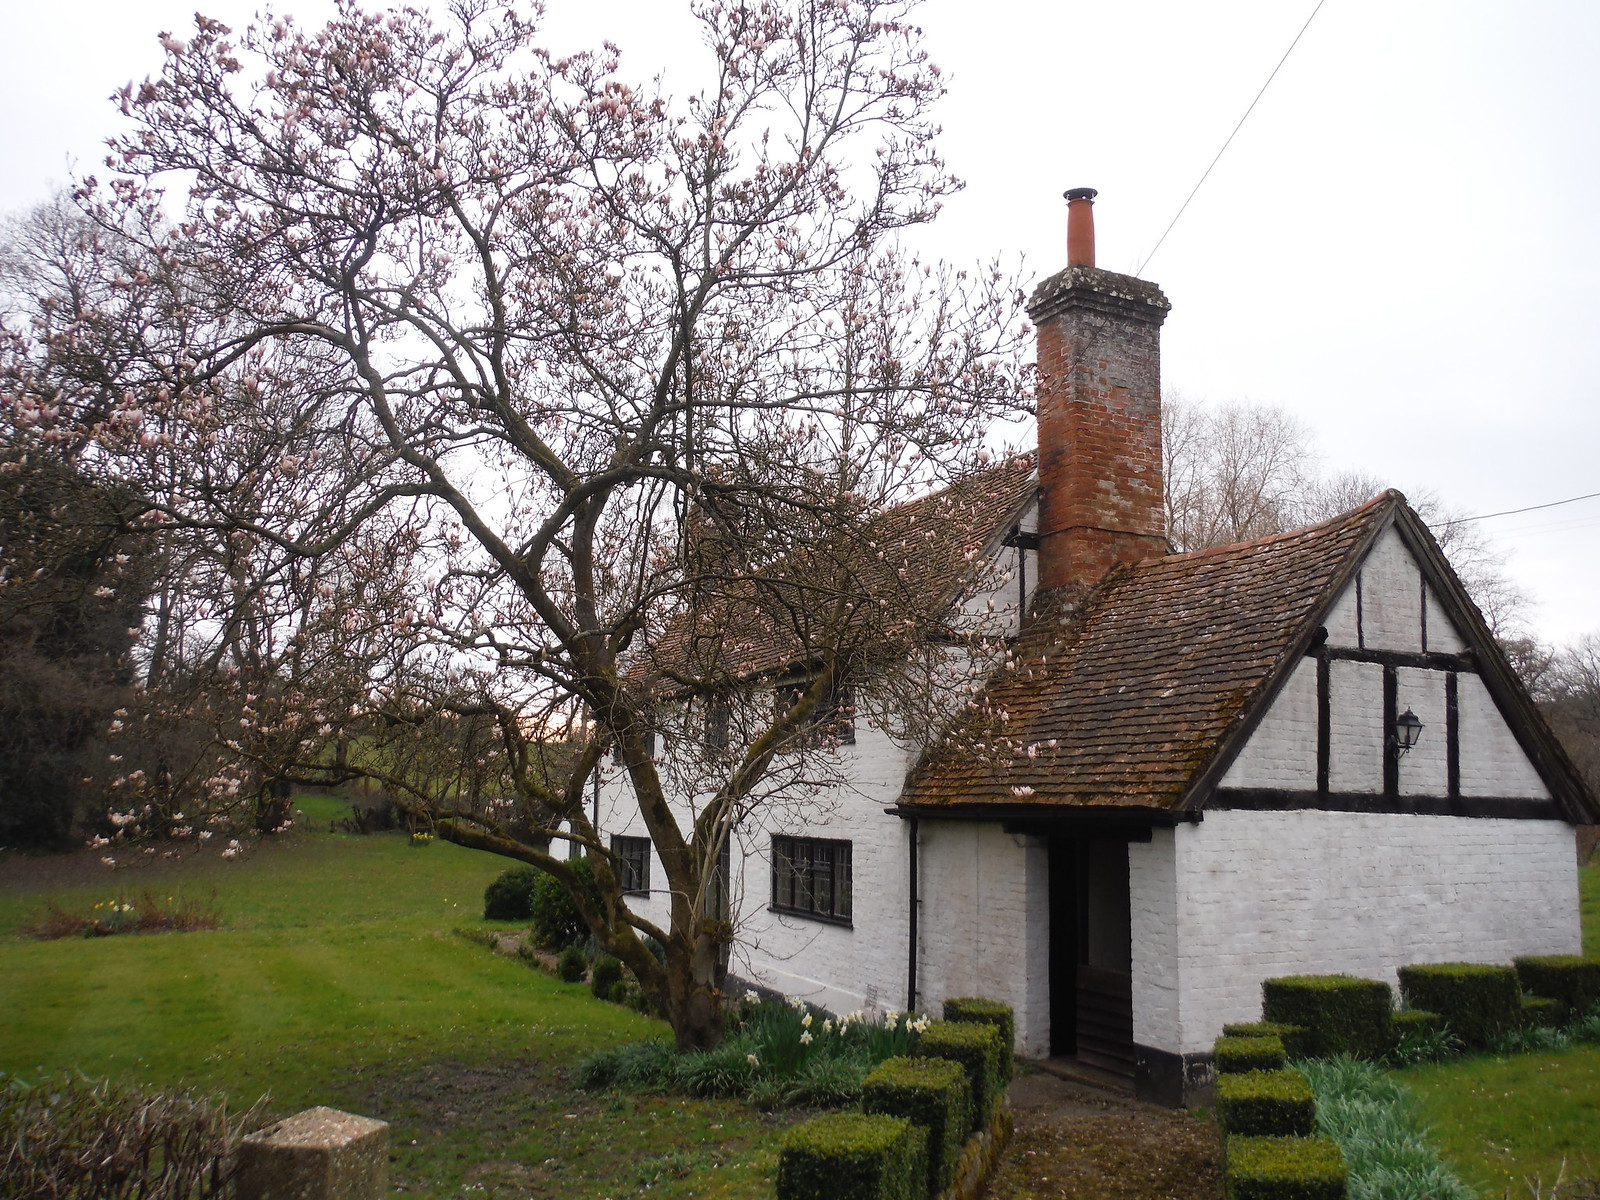 Cottage in Midgham SWC Walk 260 Aldermaston to Woolhampton [Midgham Station] (via Frilsham)